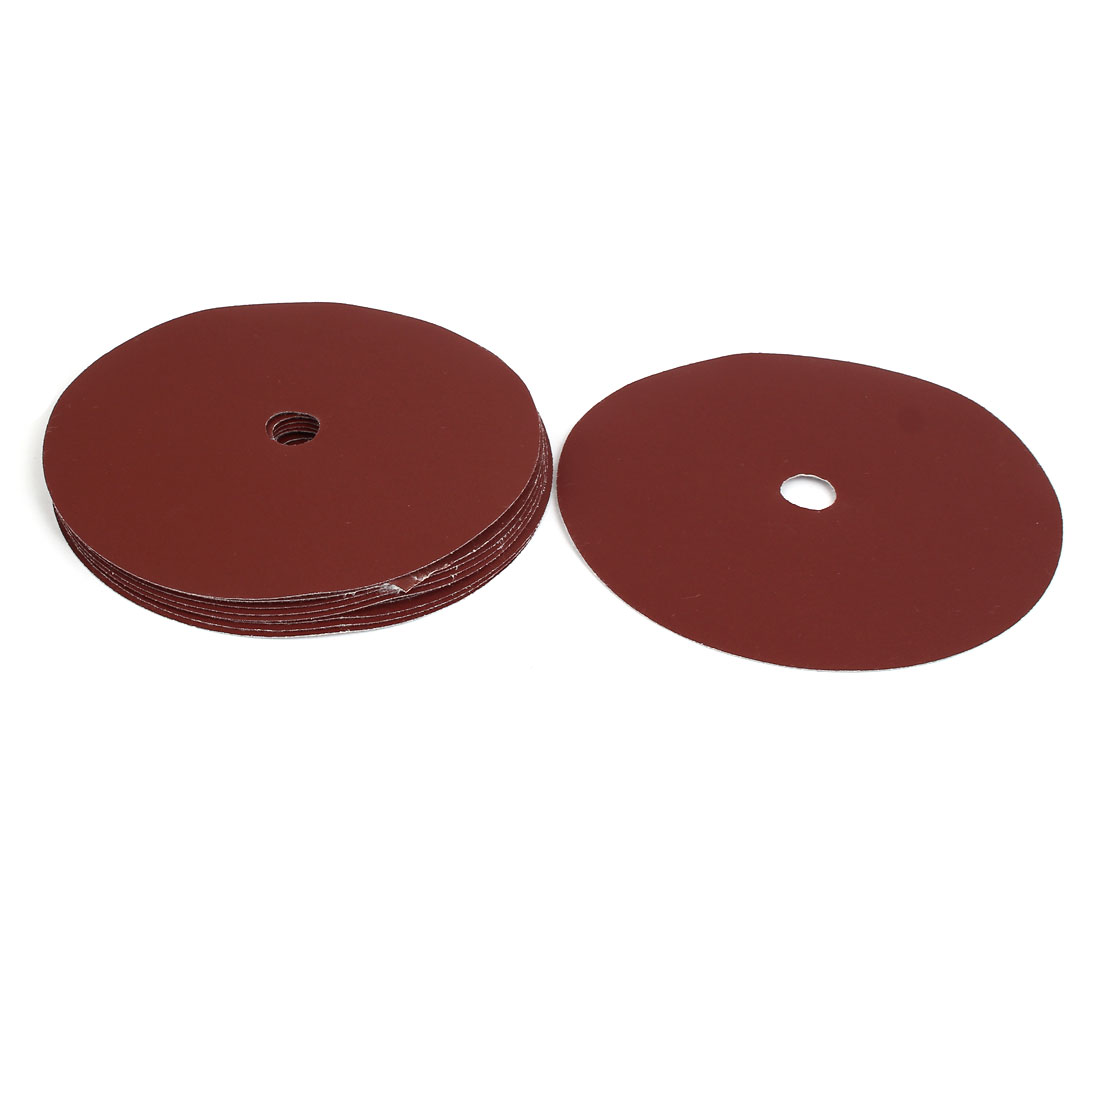 "400 Grit 1 Hole 7"" Diameter Sandpaper Hook Loop Sanding Disc 10 Pcs"